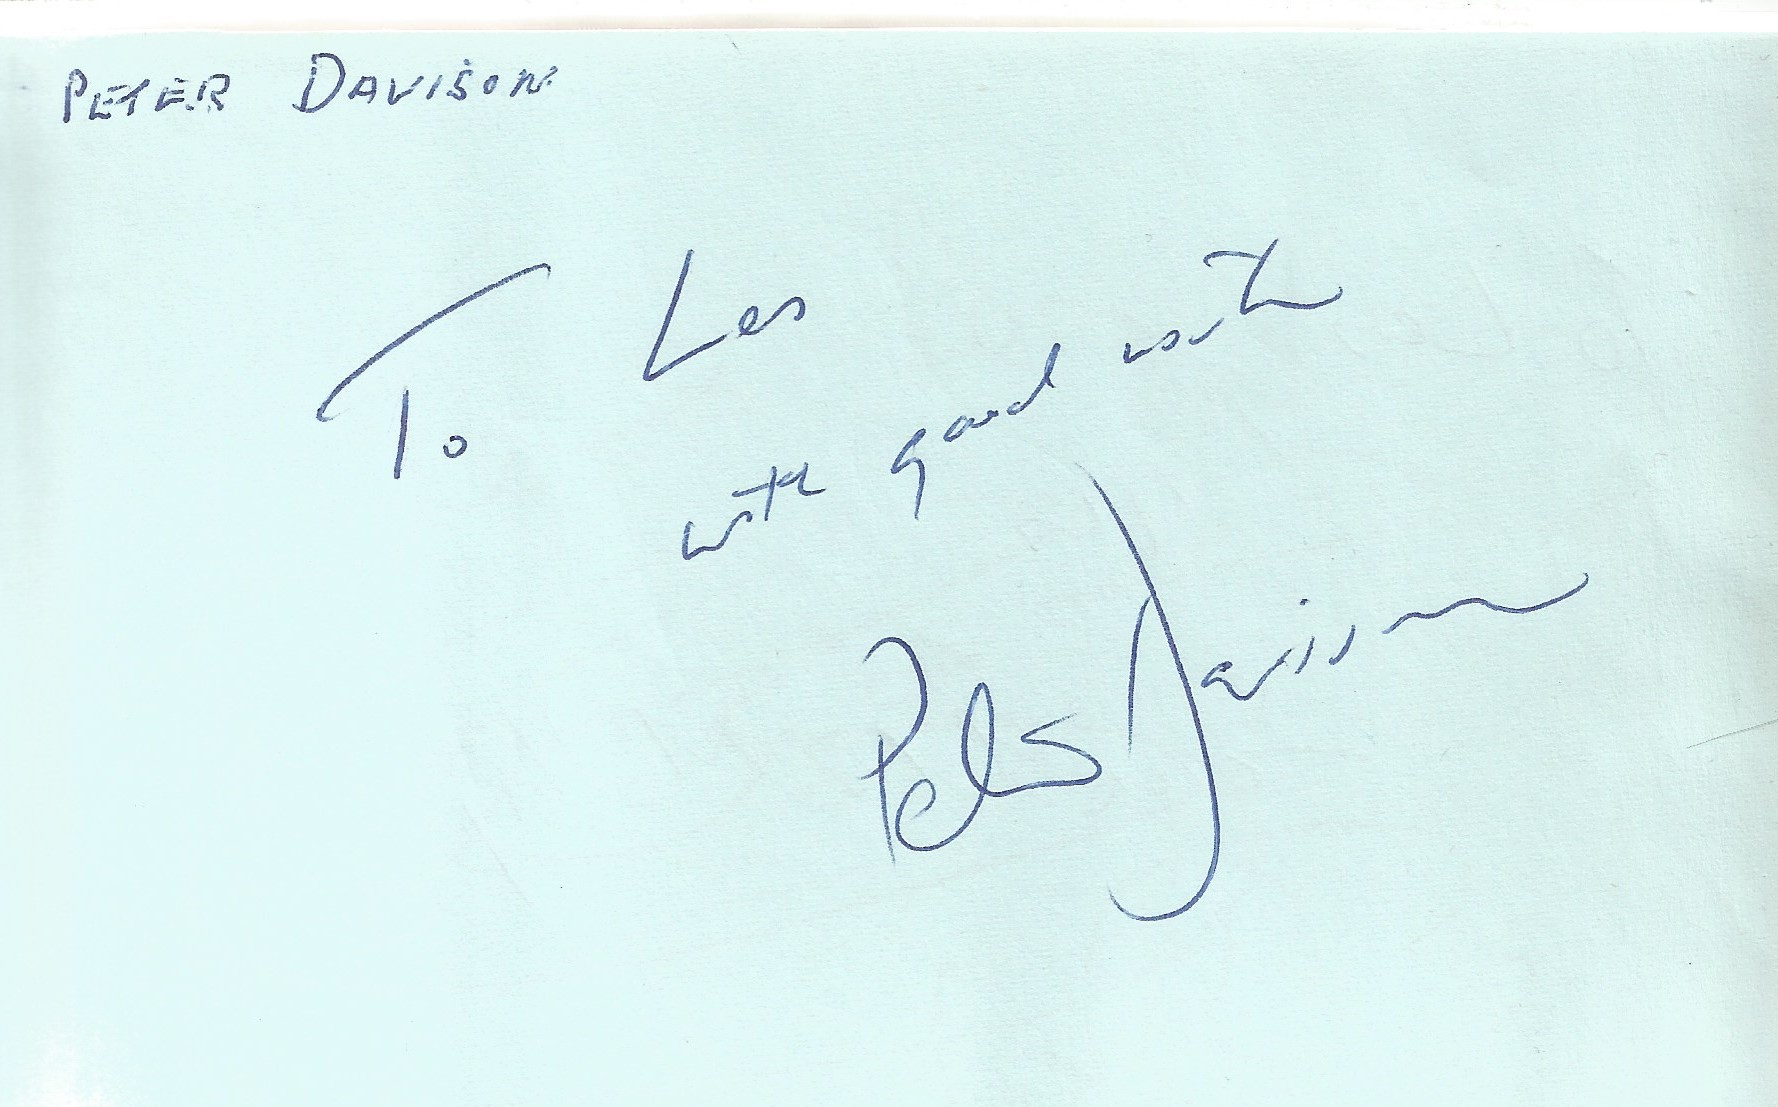 Red 6.5x4.5 Autograph book with 90 signatures including Tony Anholt, Peter Davison, Colin Baker, - Image 2 of 6